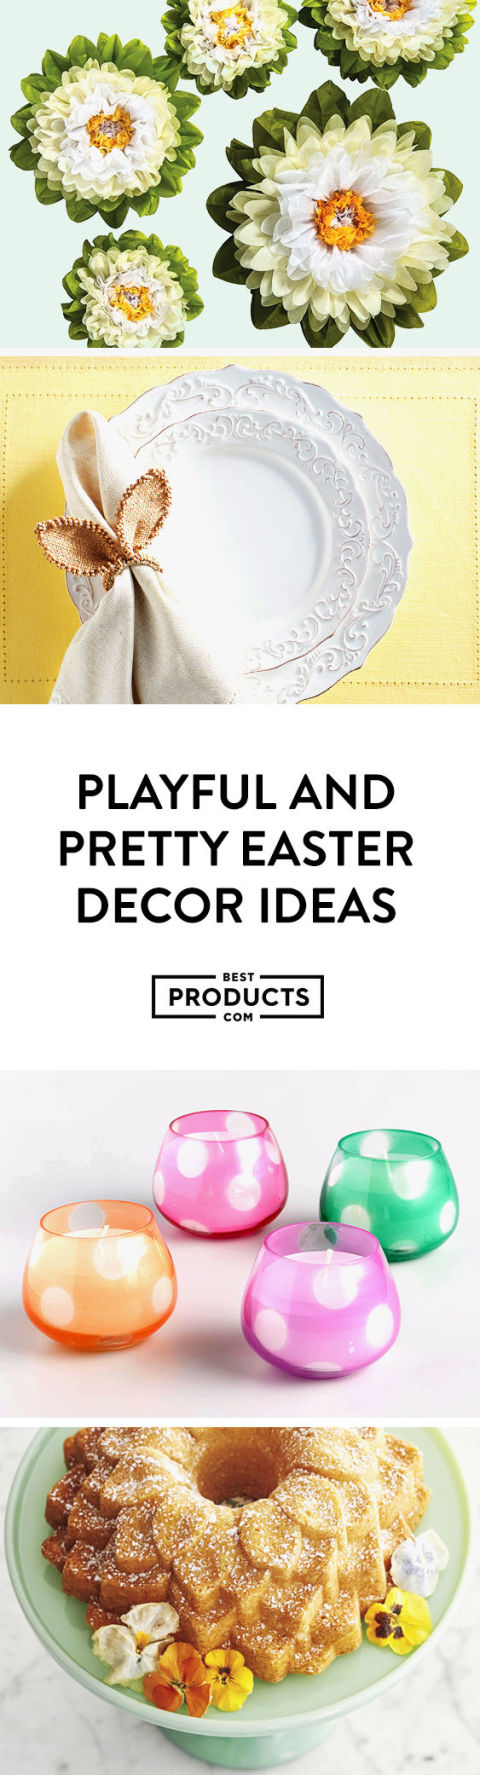 11 Best Easter Decorations of 2017 - Pretty Home Decor Ideas ...